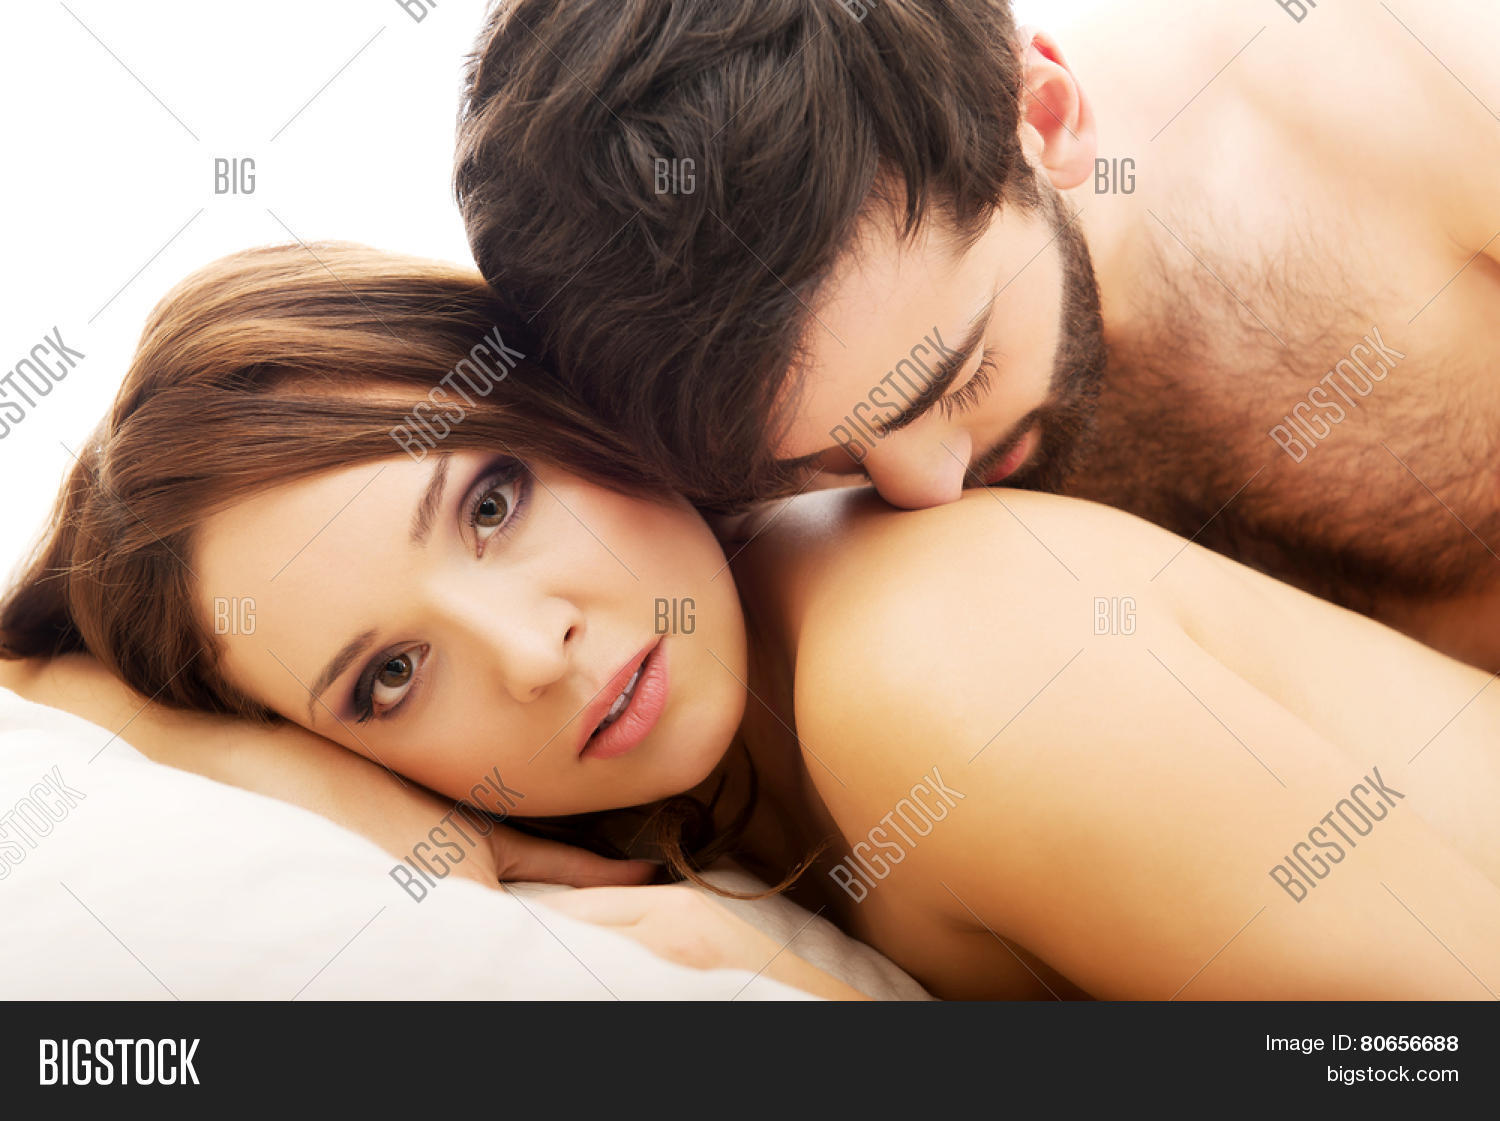 On bed love romantic Romantic Beds